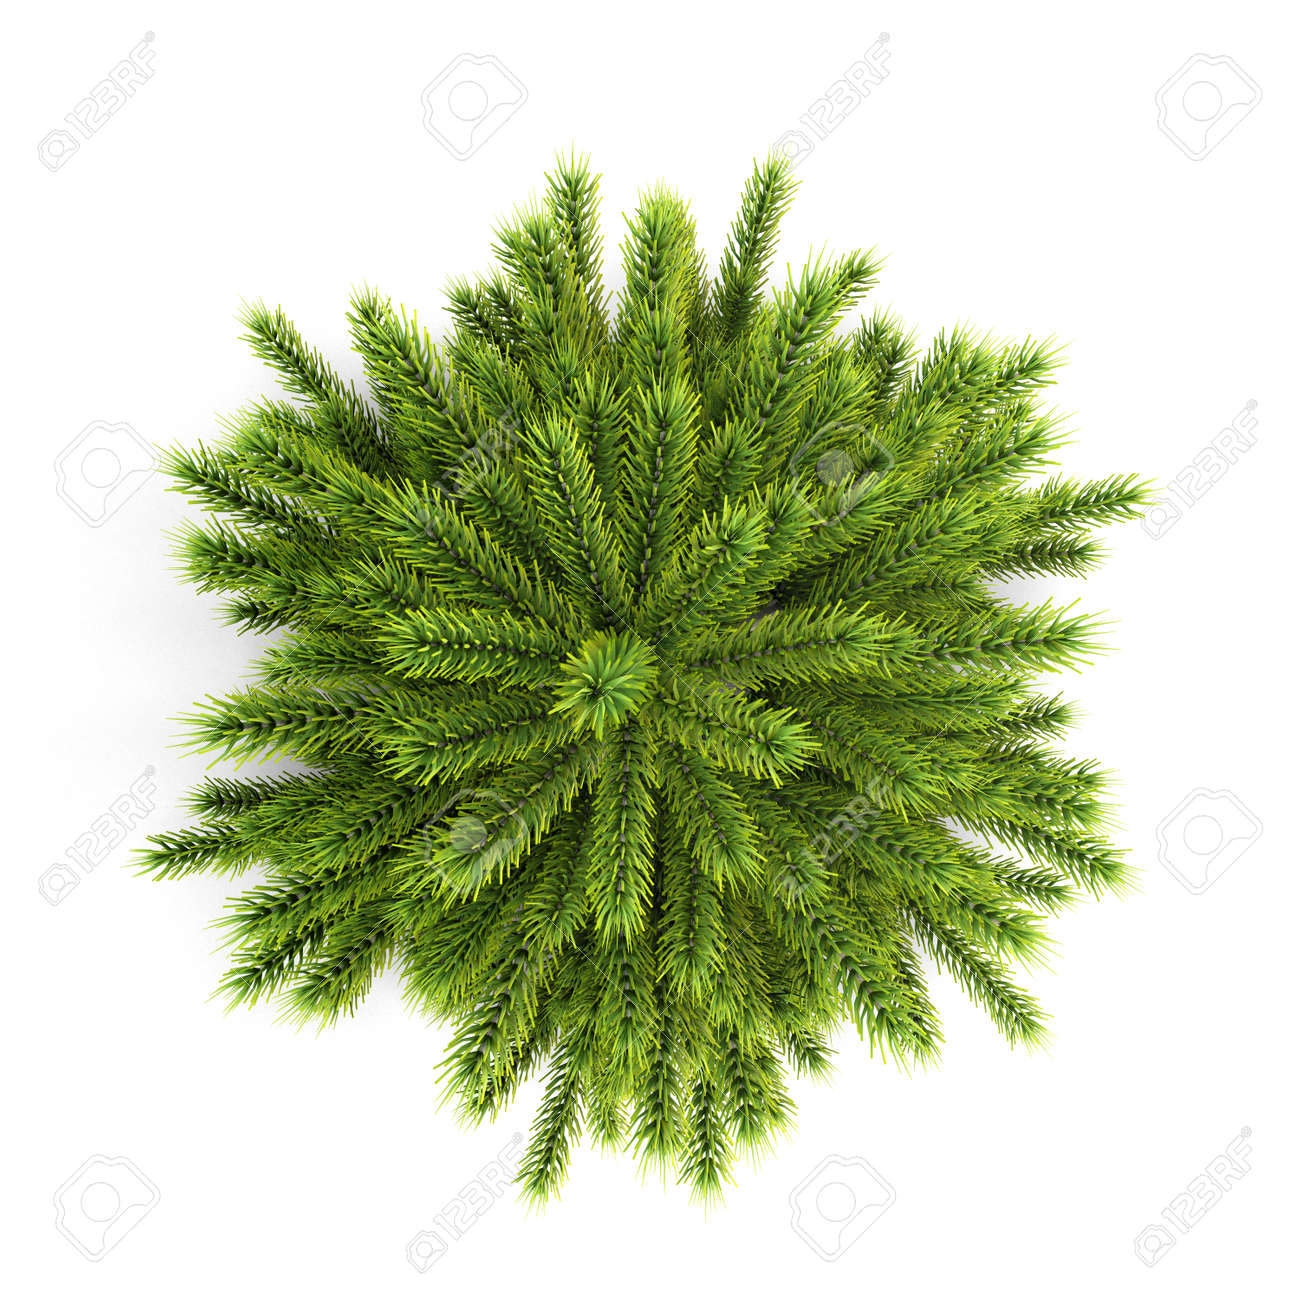 Top view christmas tree without ornaments isolated on white background. 3d  illustration. Stock Illustration